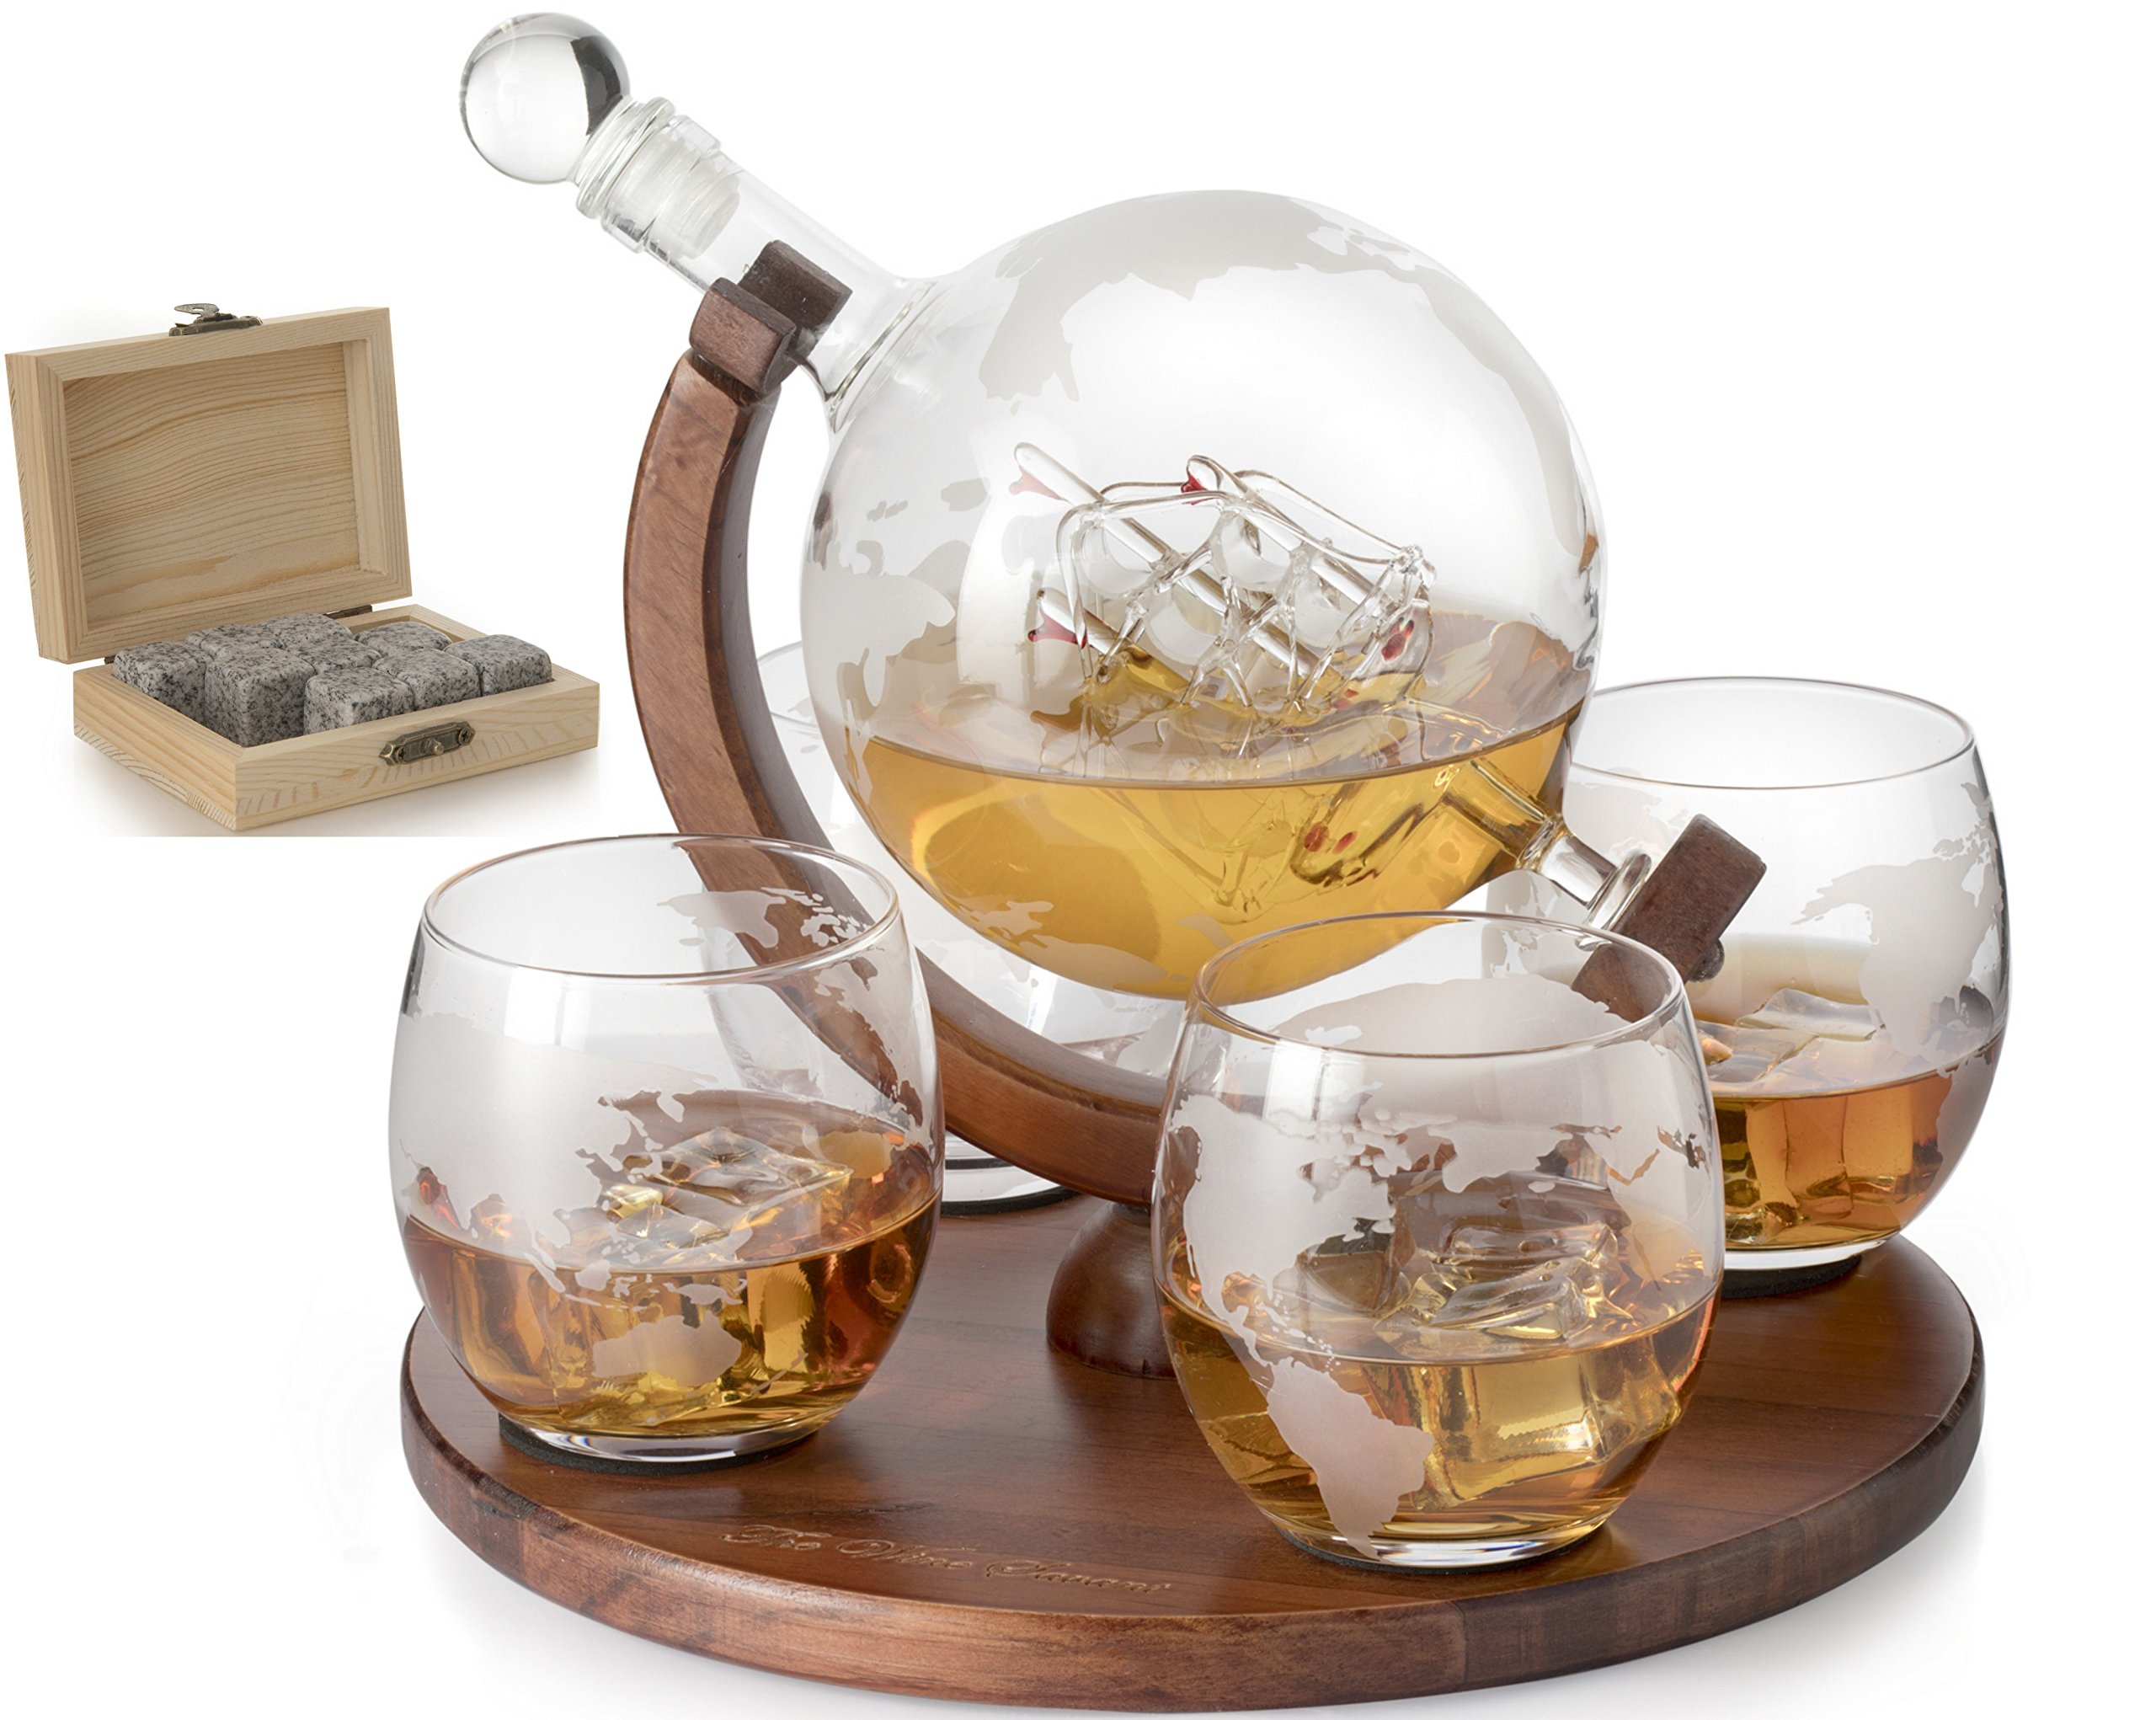 Etched World Decanter whiskey Globe - The Wine Savant, Whiskey Gift Set Decanter with Antique Ship, Whiskey Stones and 4 World Map Glasses, Great Gift - Alcohol Related Gift, HOME BAR DECOR by The Wine Savant (Image #1)